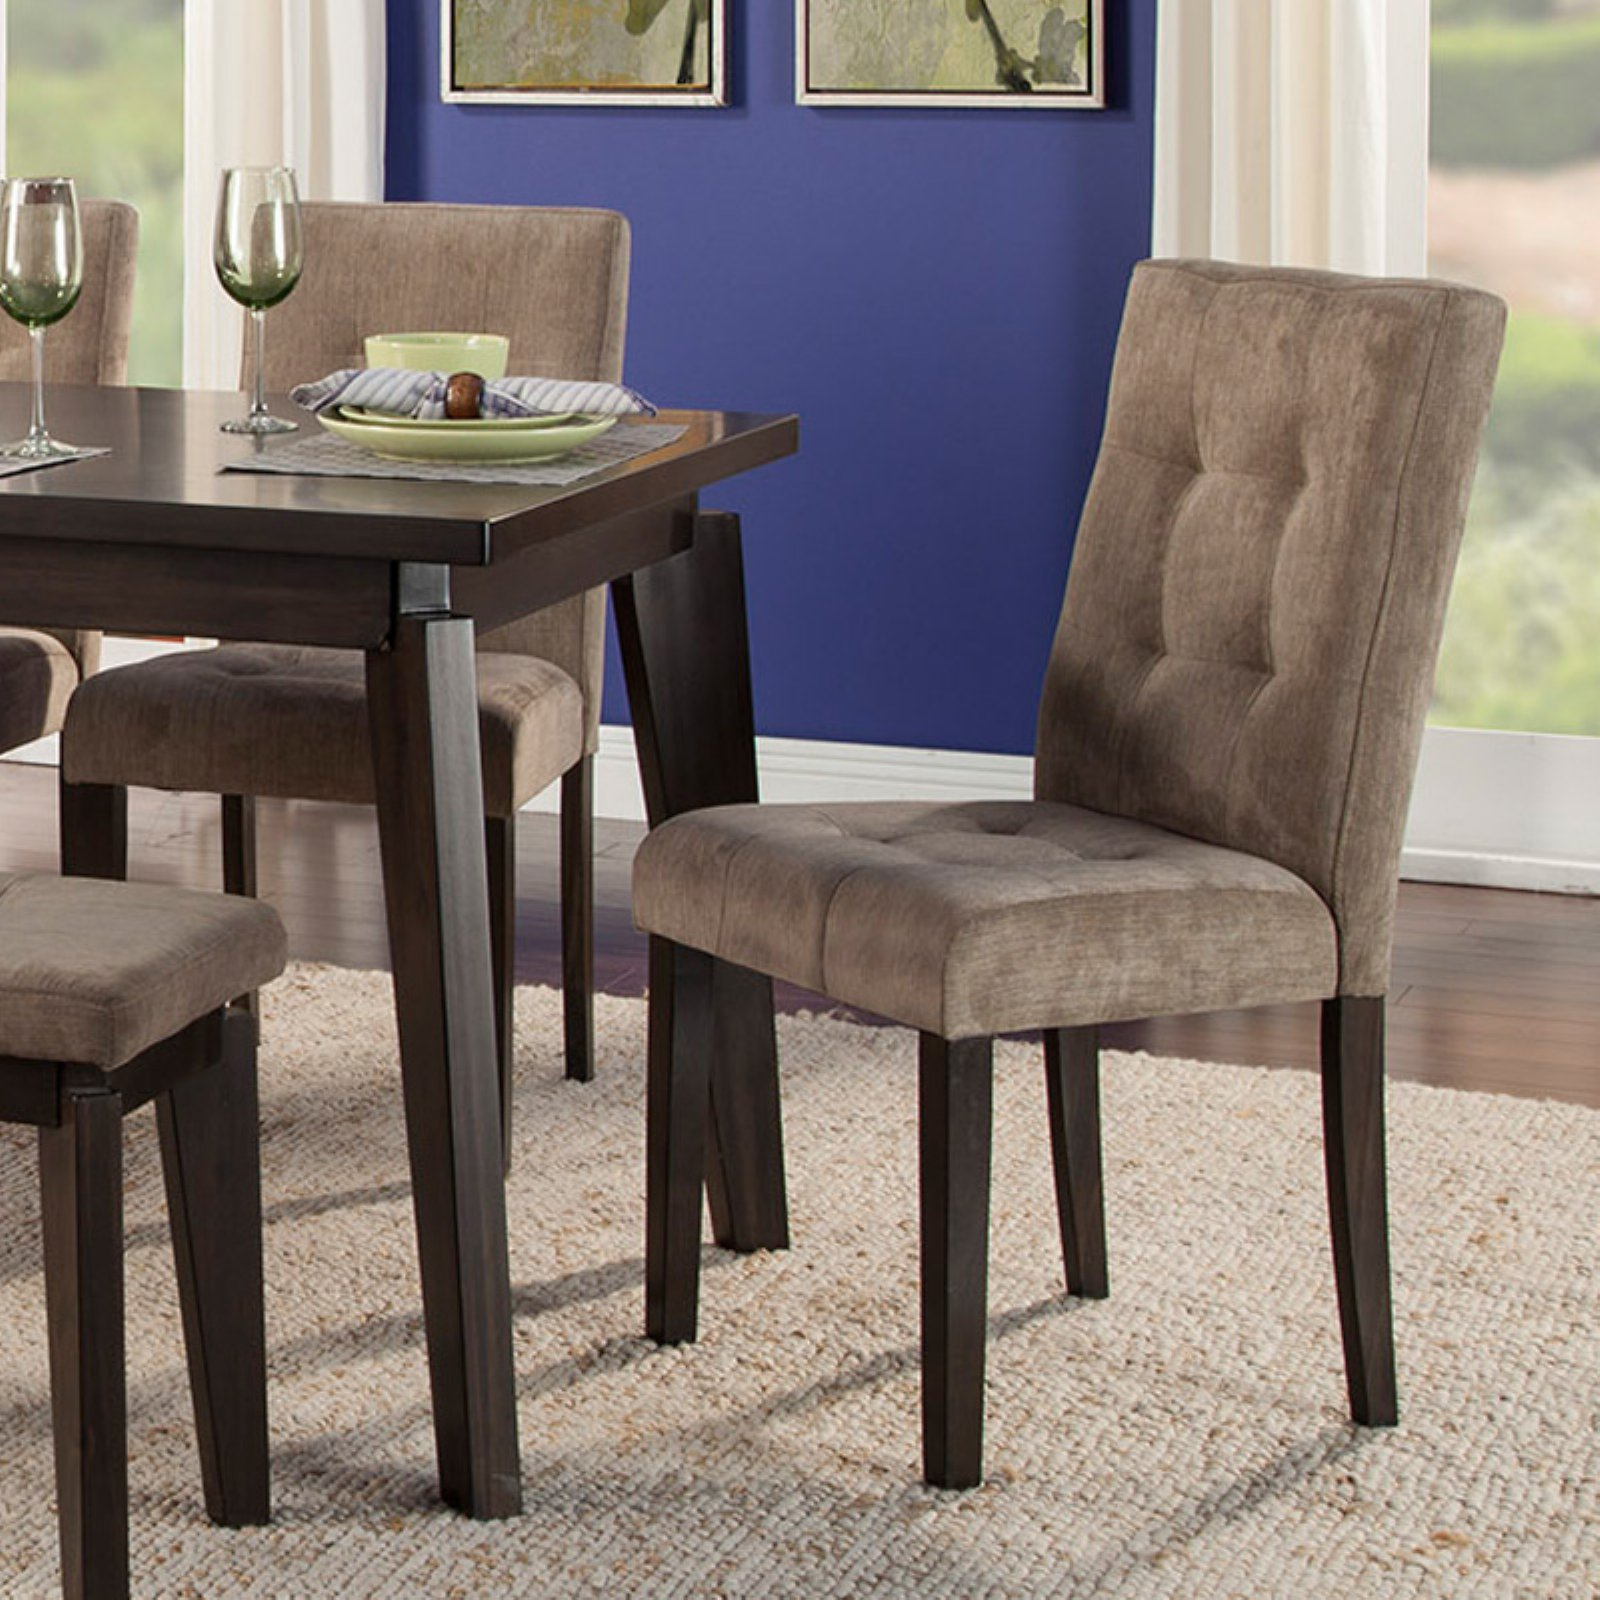 Miraculous Alpine Furniture Uptown Parson Dining Chair Set Of 2 In Short Links Chair Design For Home Short Linksinfo